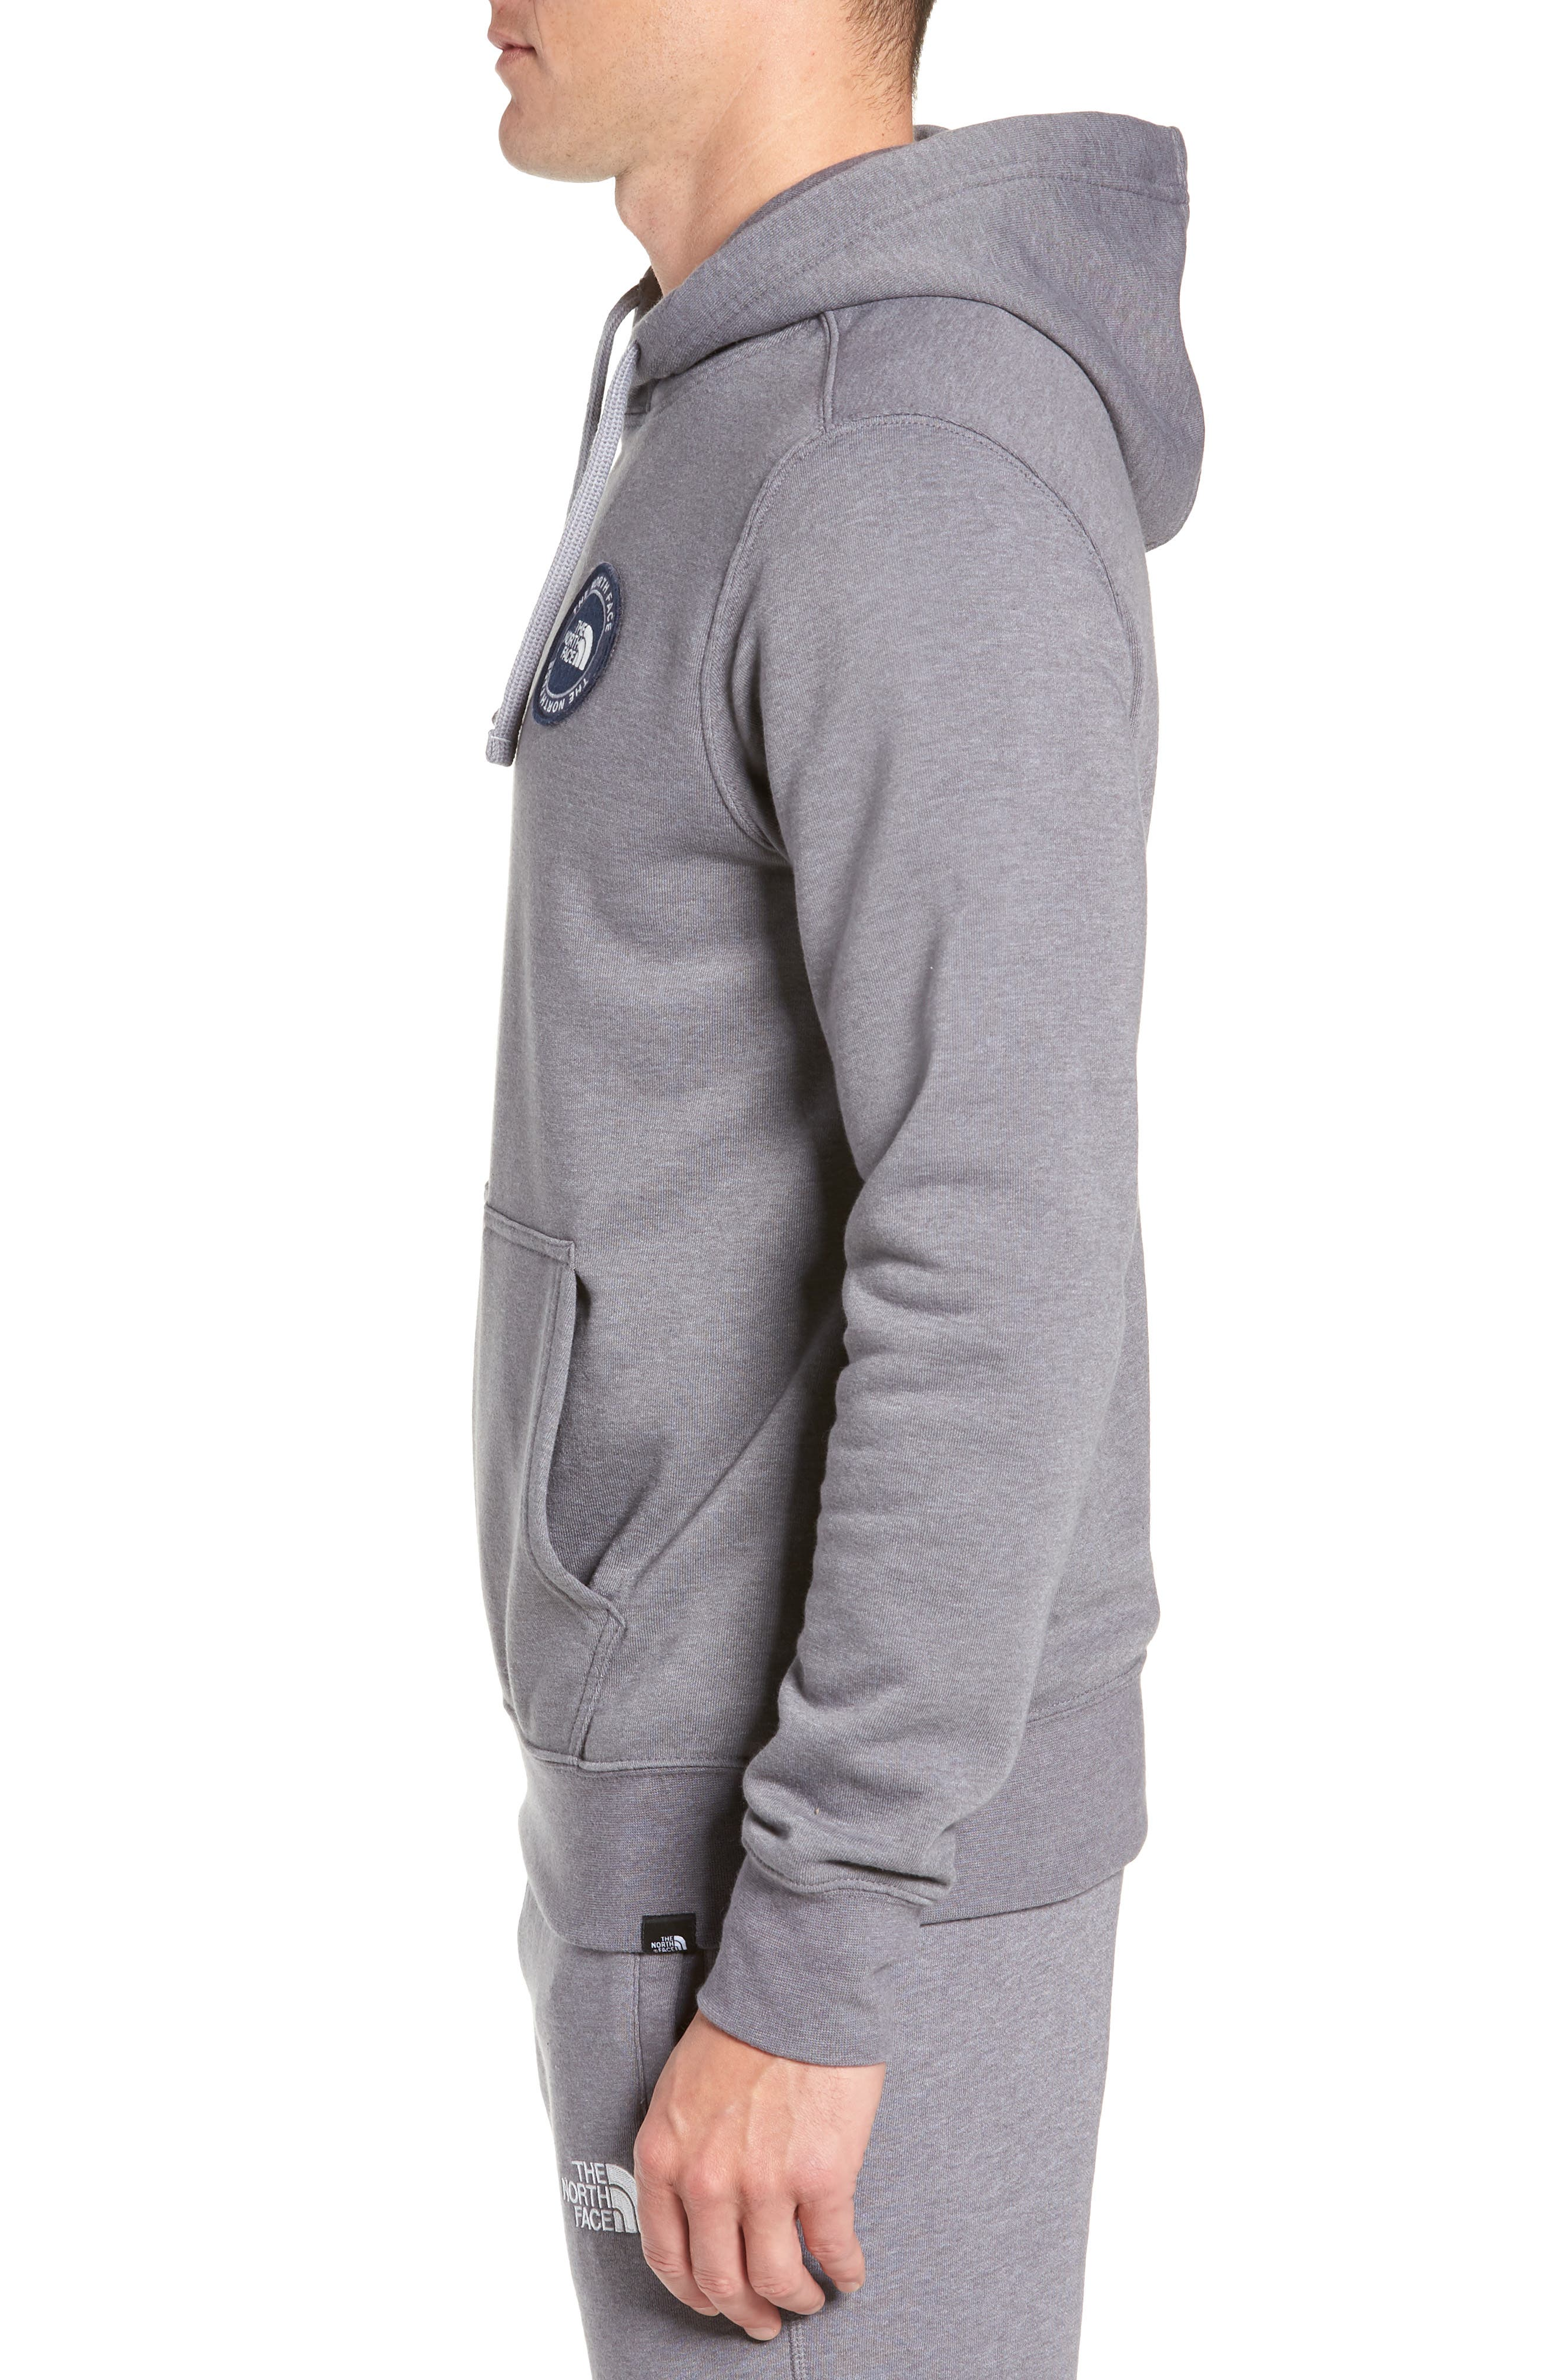 North Face Logo Patch Pullover Hoodie,                             Alternate thumbnail 3, color,                             TNF MEDIUM GREY HEATHER